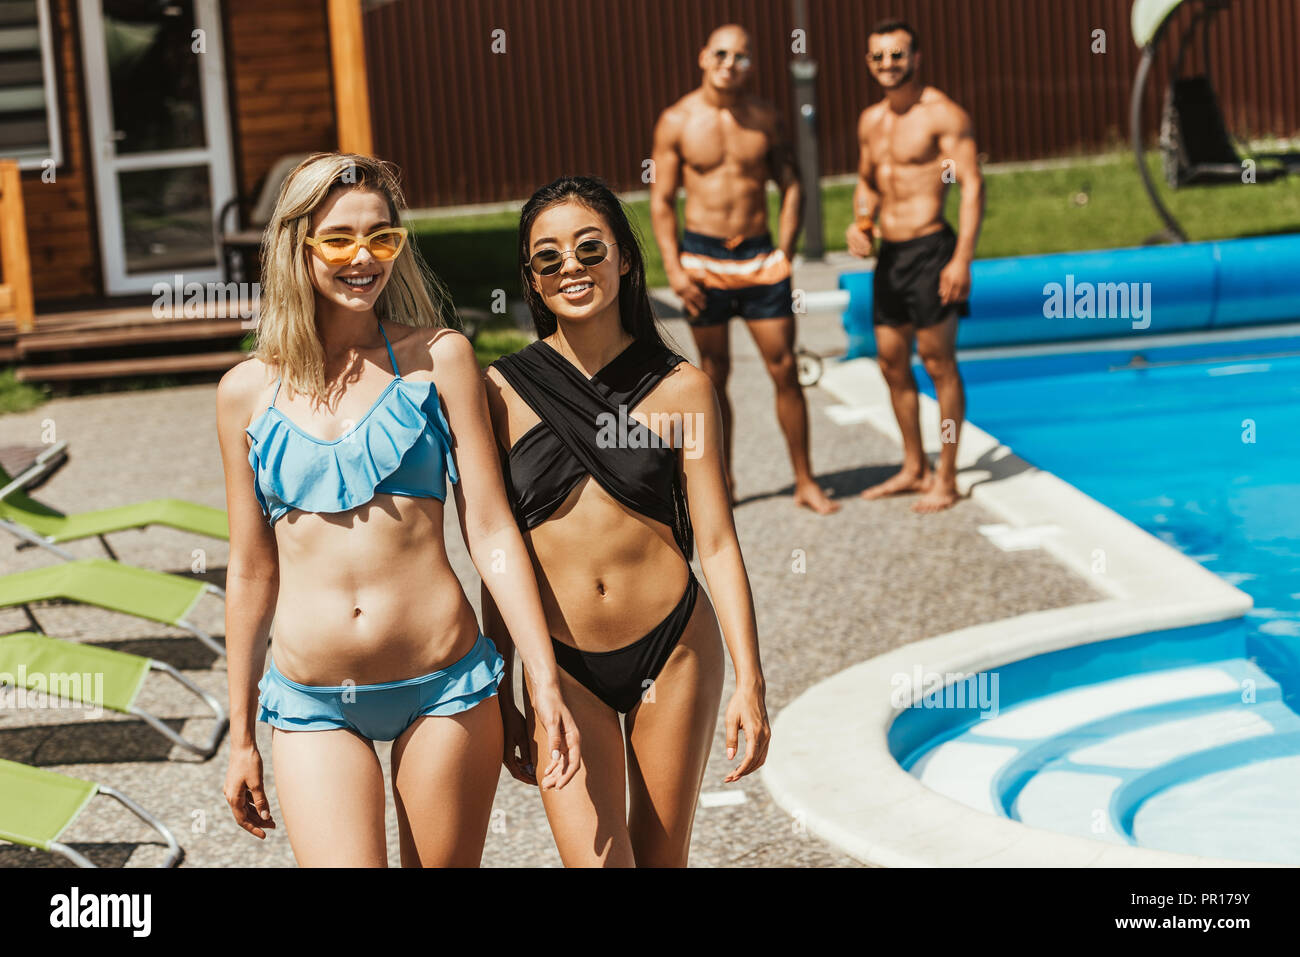 beautiful multicultural girls in swimsuits walking at poolside with boyfriends behind - Stock Image